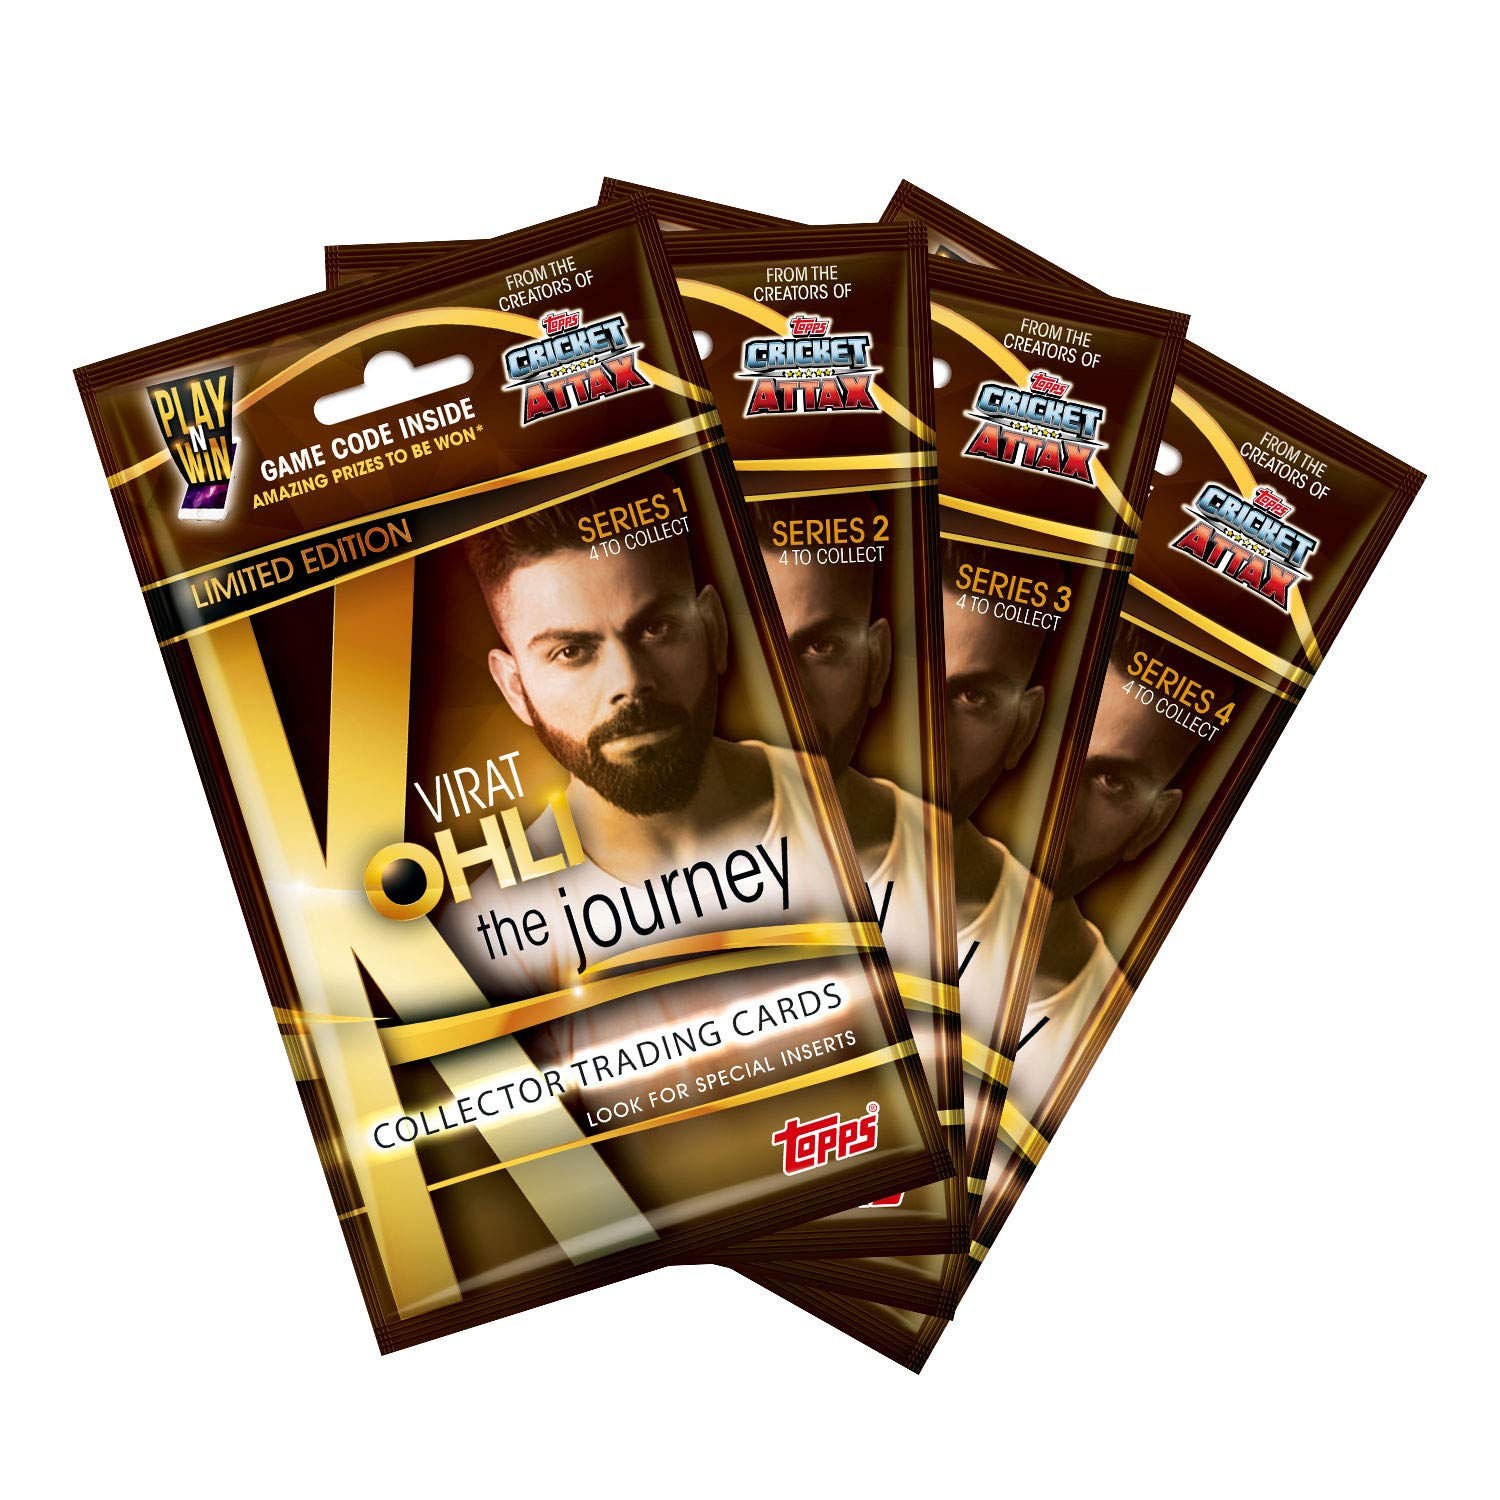 Collector Trading Card Game, Series 1,2,3 and 4